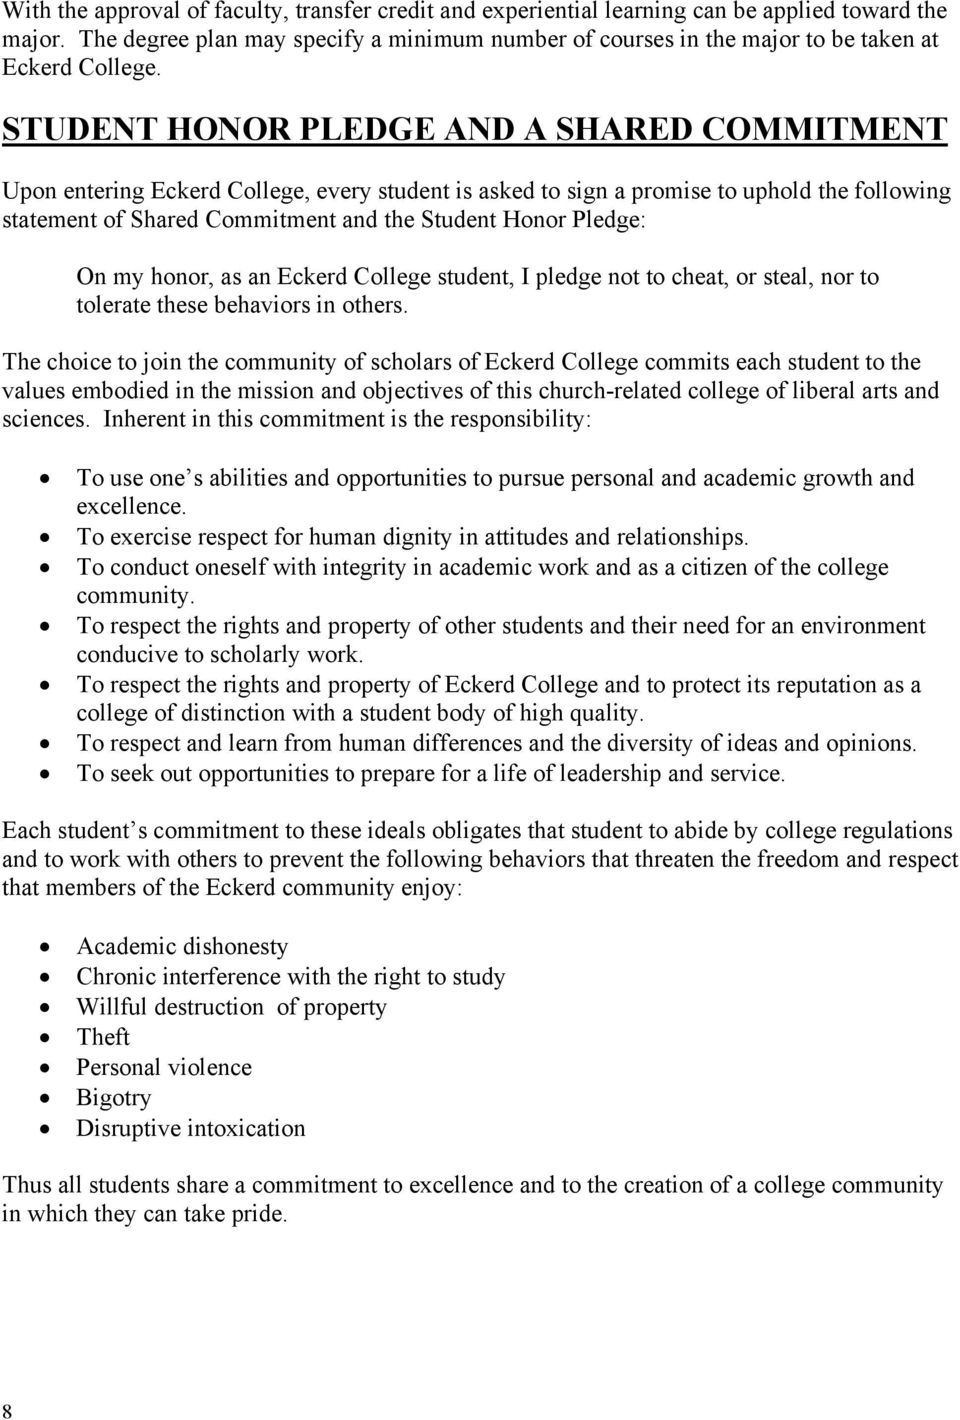 STUDENT HONOR PLEDGE AND A SHARED COMMITMENT Upon entering Eckerd College, every student is asked to sign a promise to uphold the following statement of Shared Commitment and the Student Honor